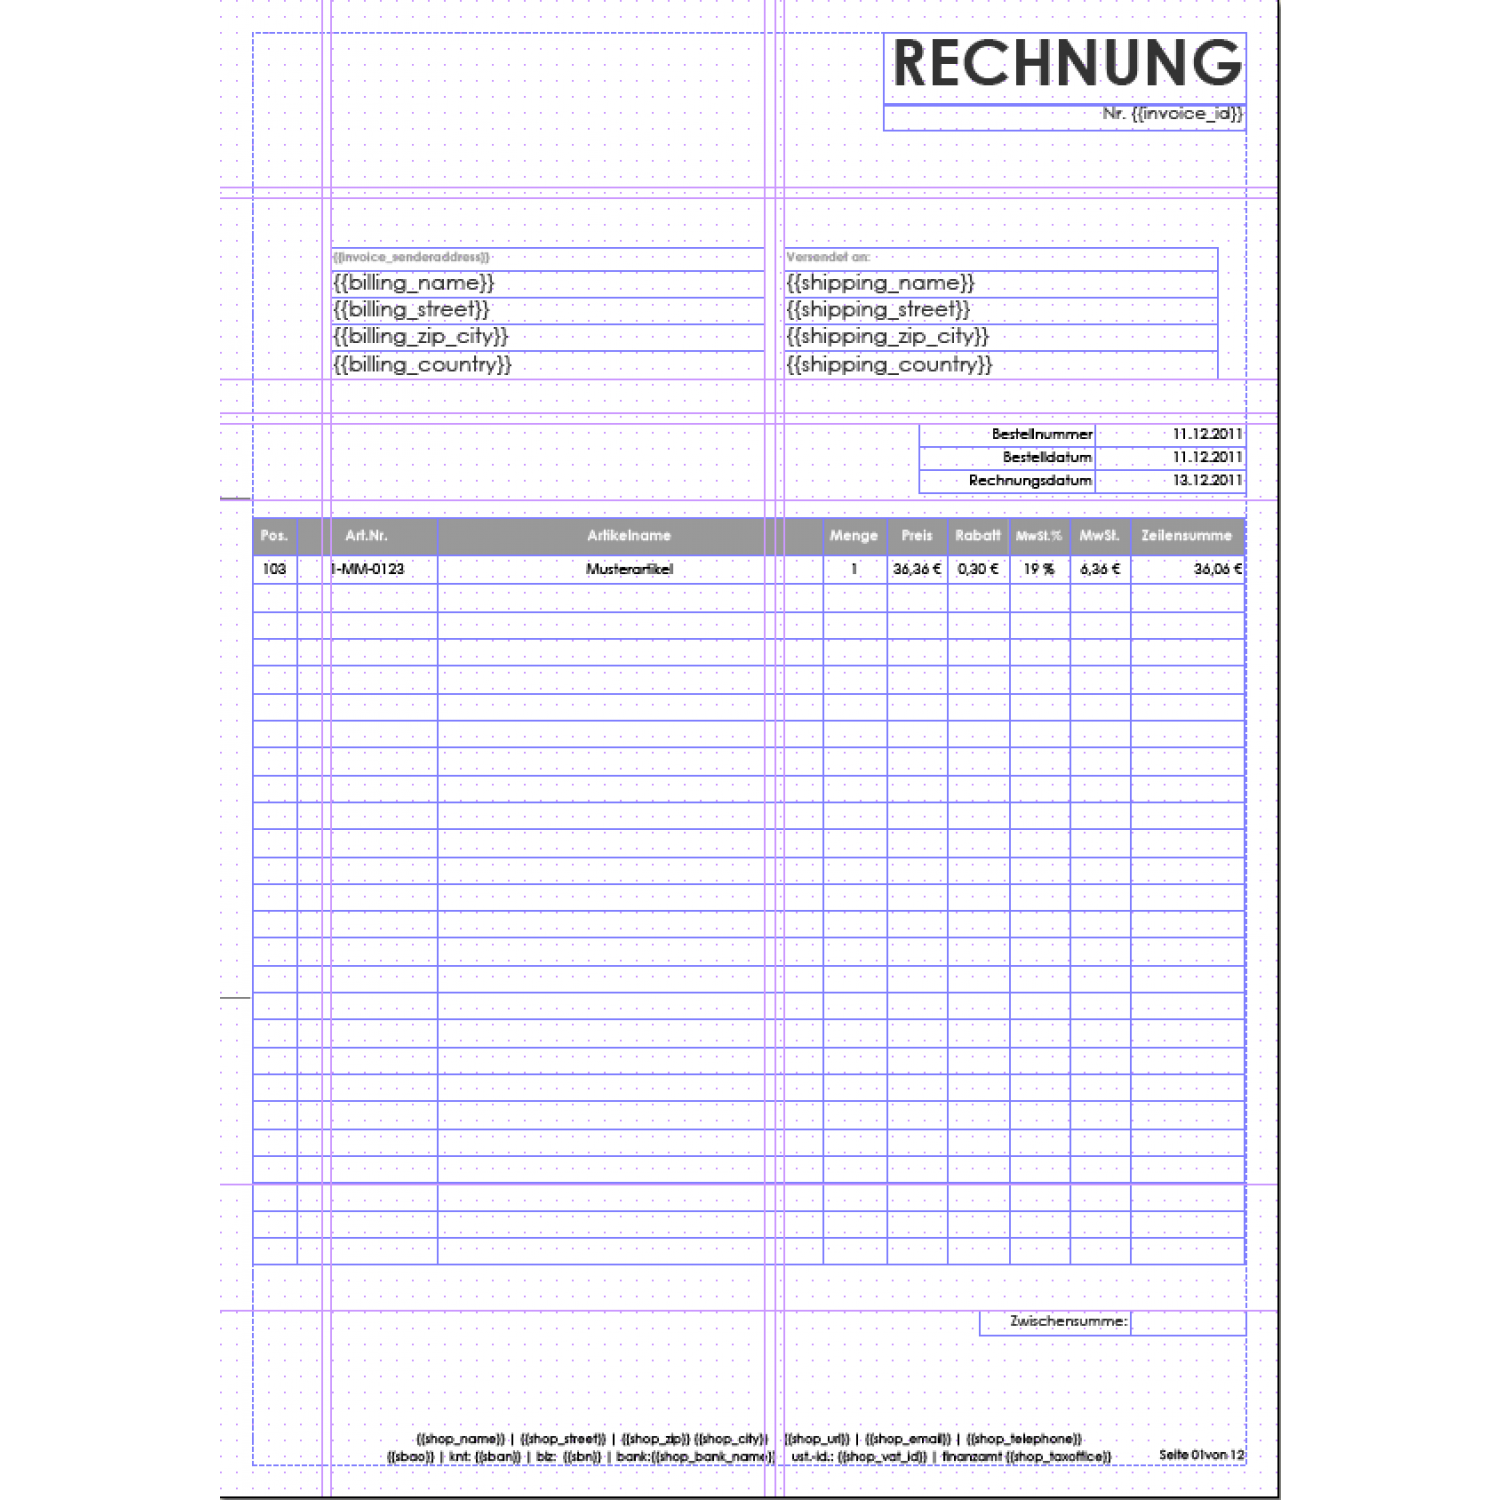 Payment Invoice Sample Pdf Download German Invoice Template Word  Rabitahnet Receipt Of Confirmation Excel with Valid Invoice Word Invoice Pdf Pro  Windowinvoice Invoice Template German Simple Invoice Deposit Receipt For Car Sale Word